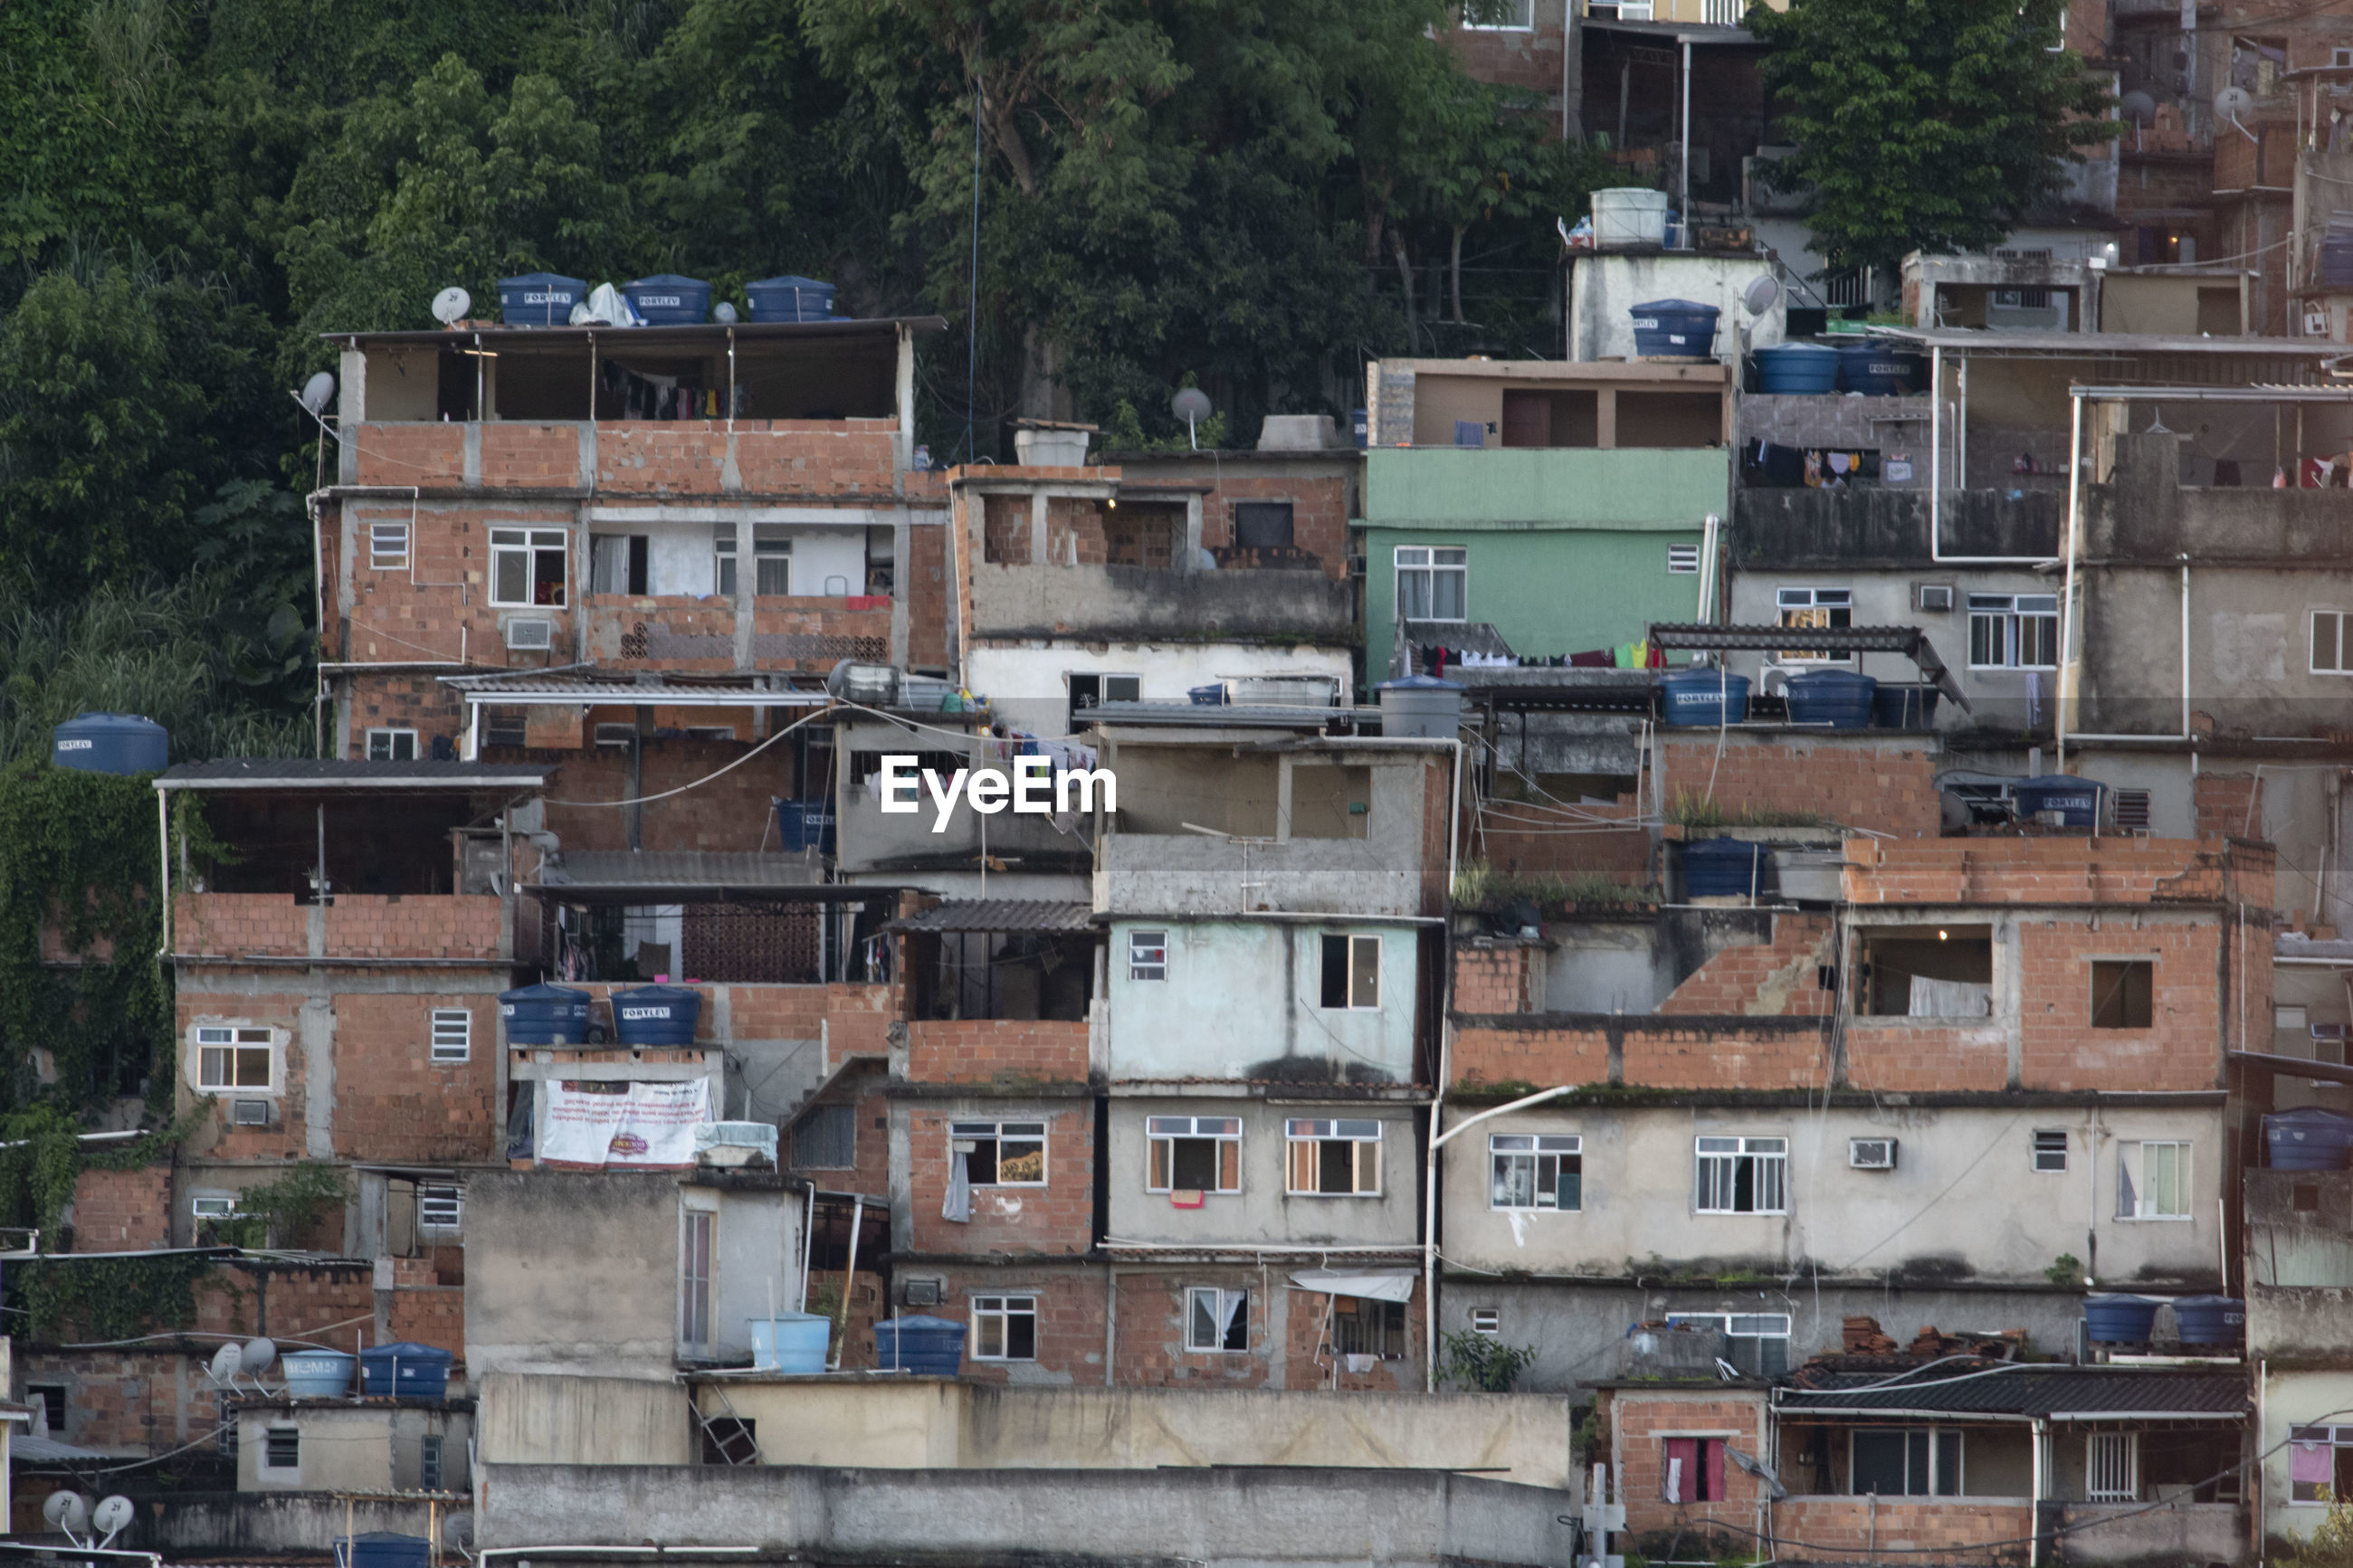 View of the community of mangueira, a very densely populated place